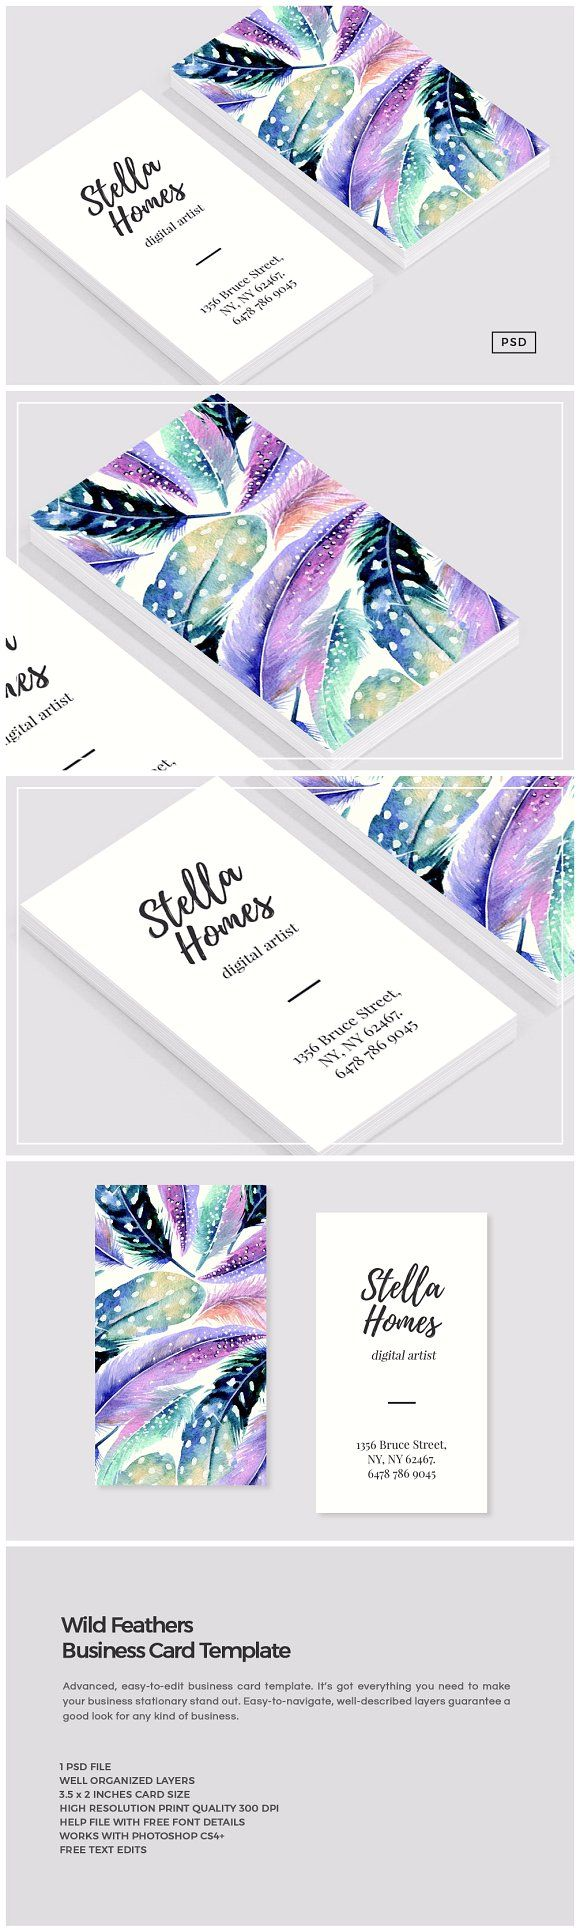 166 best business cards images on pinterest business card design wild feathers business card template by the design label on creativemarket reheart Gallery